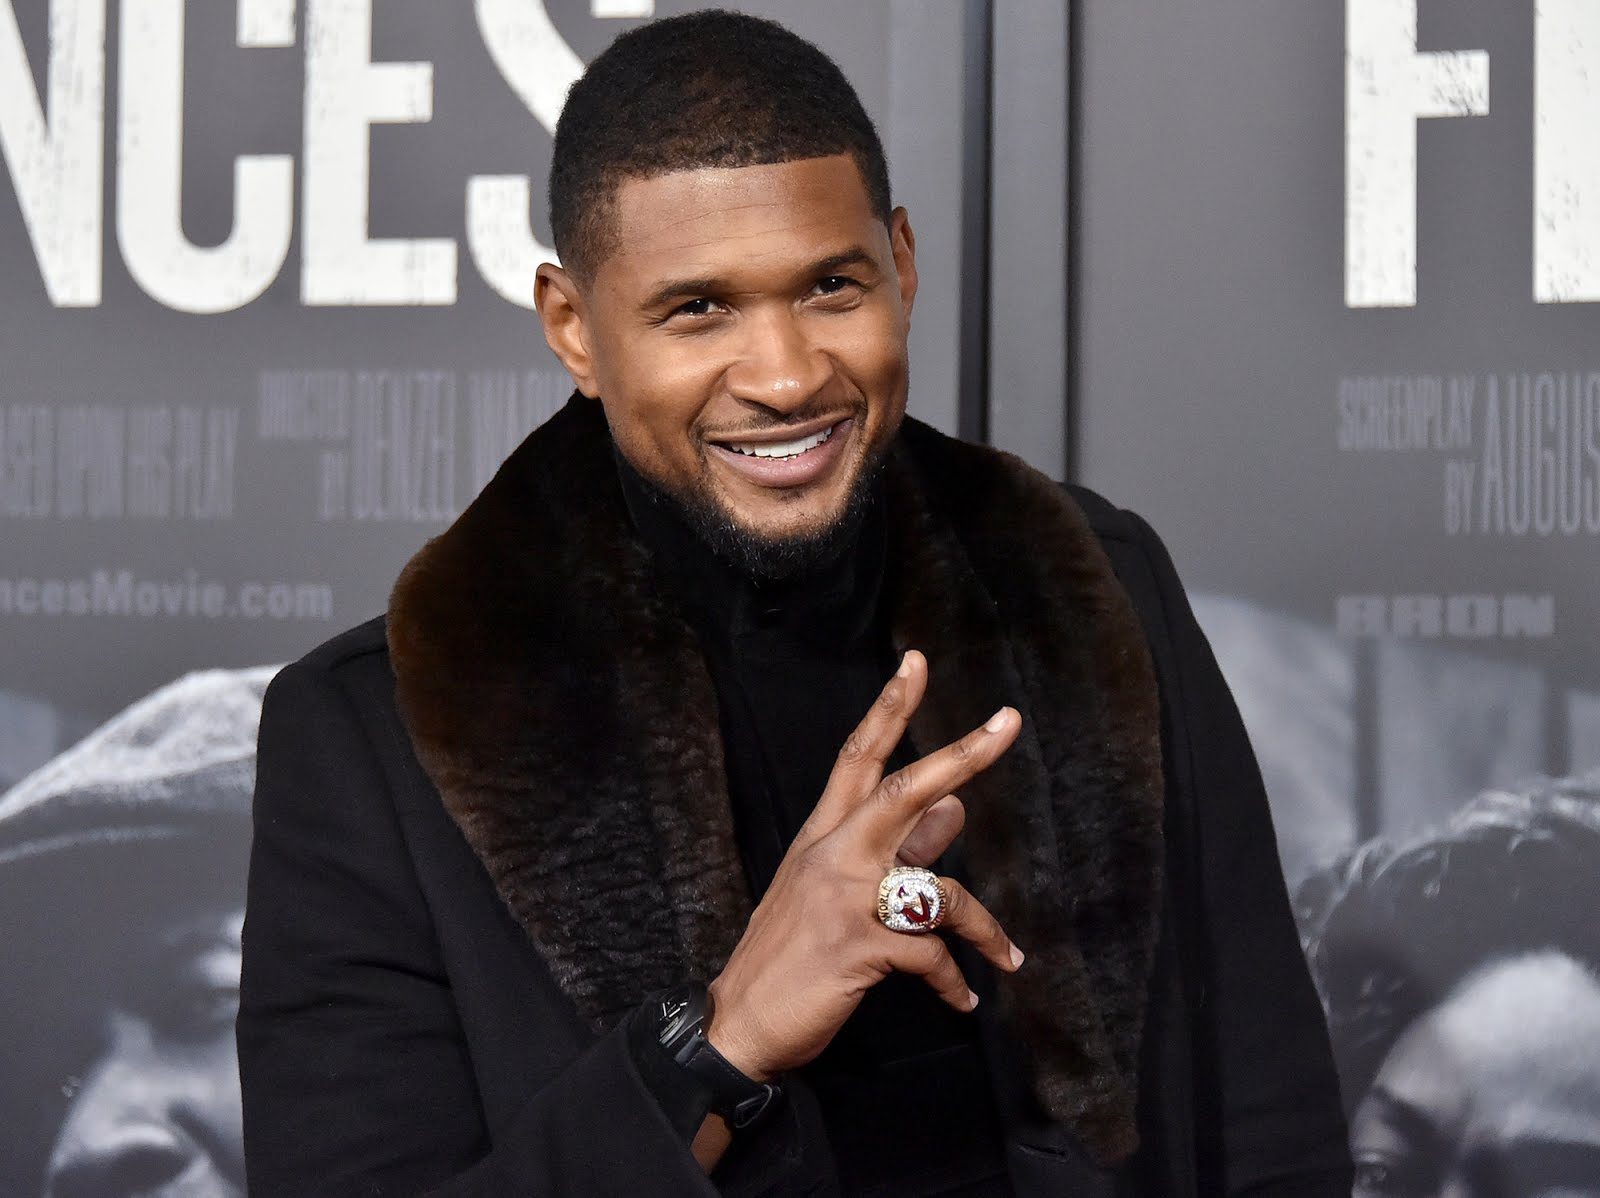 All About Usher